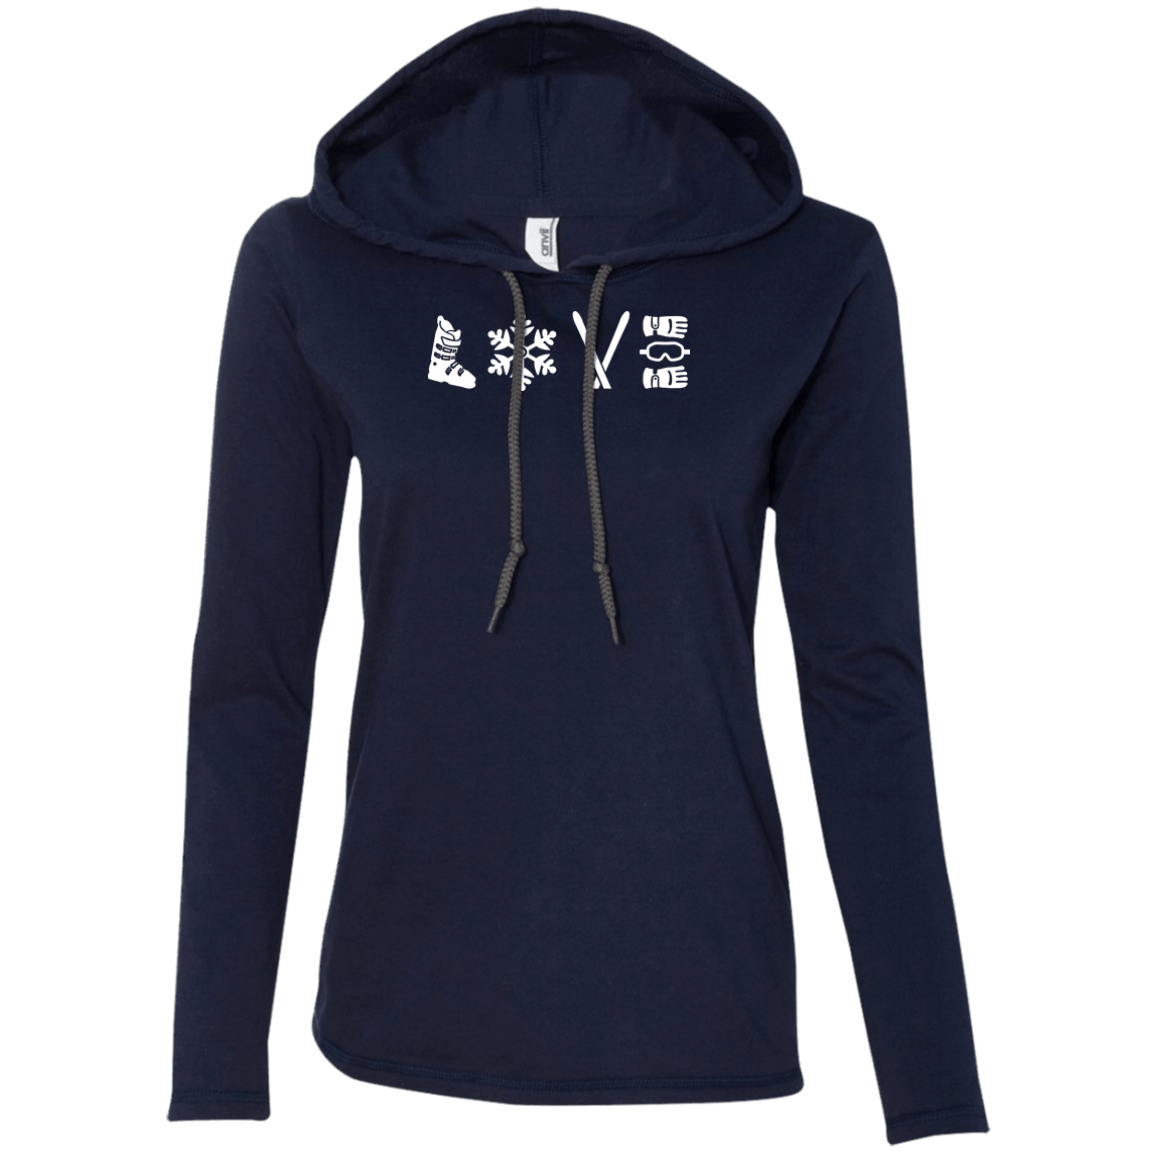 Love Ski - Hoodies - Powderaddicts